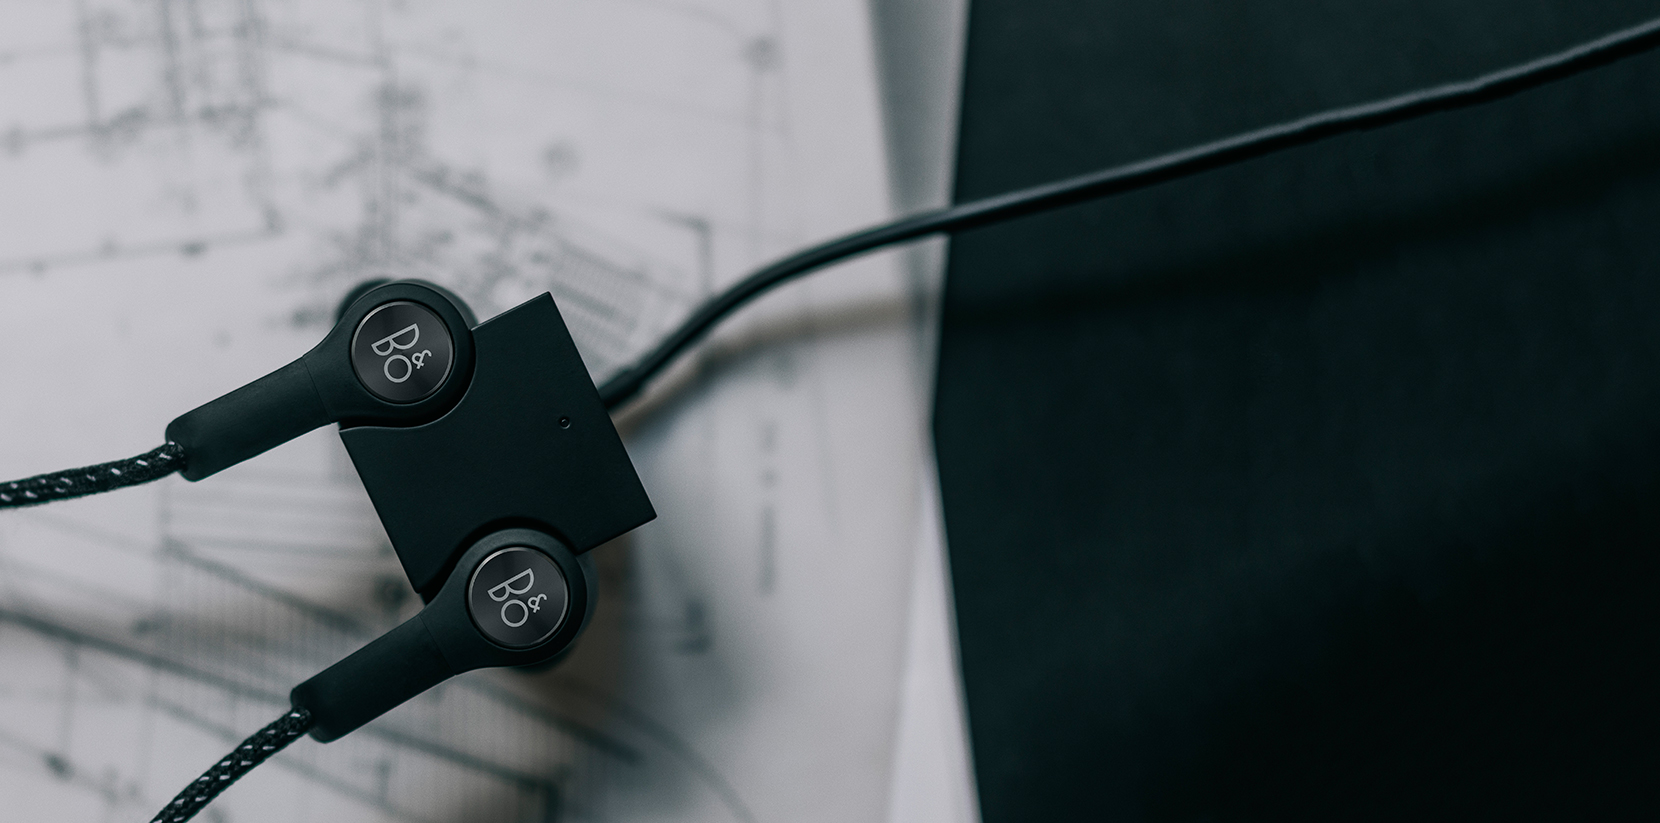 B&O Beoplay H5 : Ecouteurs portés